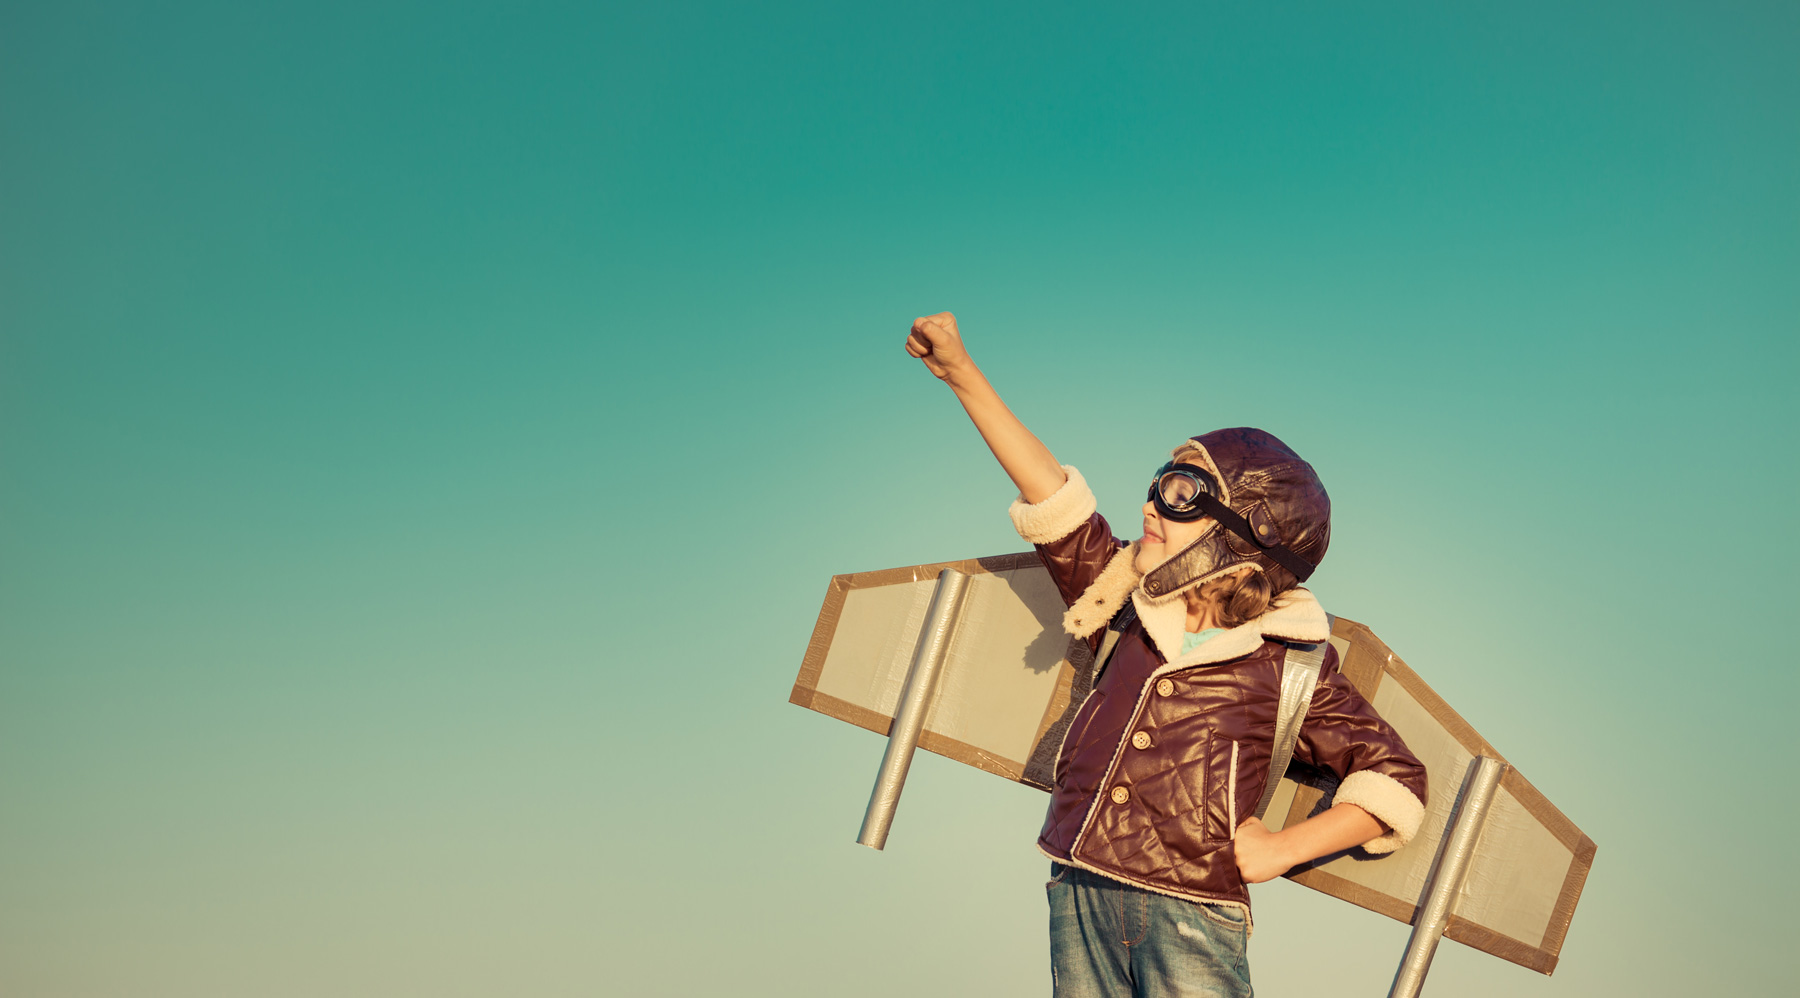 Kid pilot with toy jet pack against autumn sky background. Happy child playing outdoors